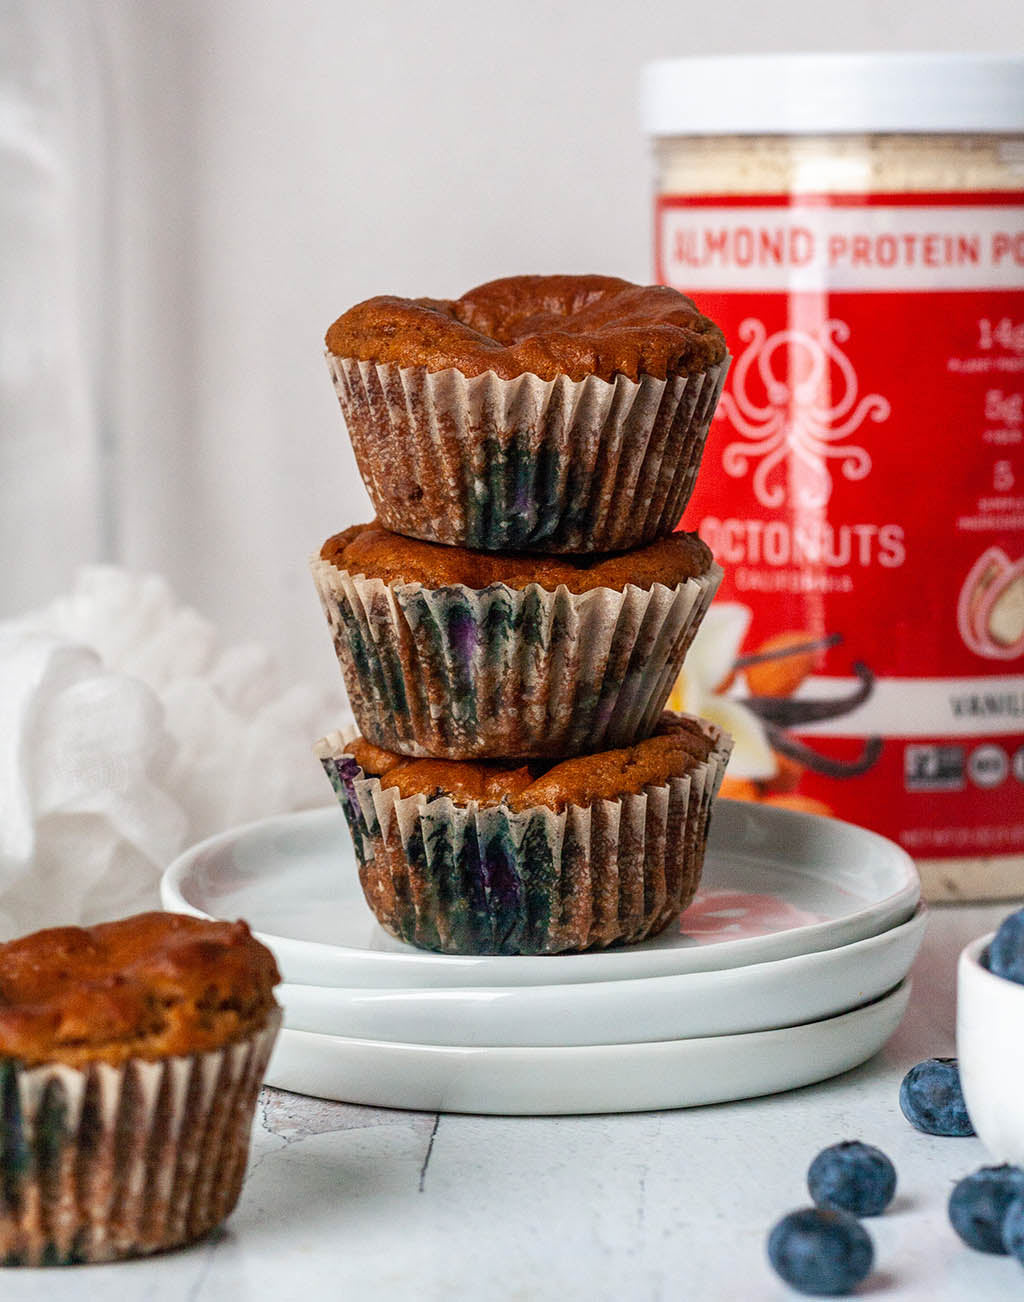 Octonuts Paleo Blueberry Protein Muffins